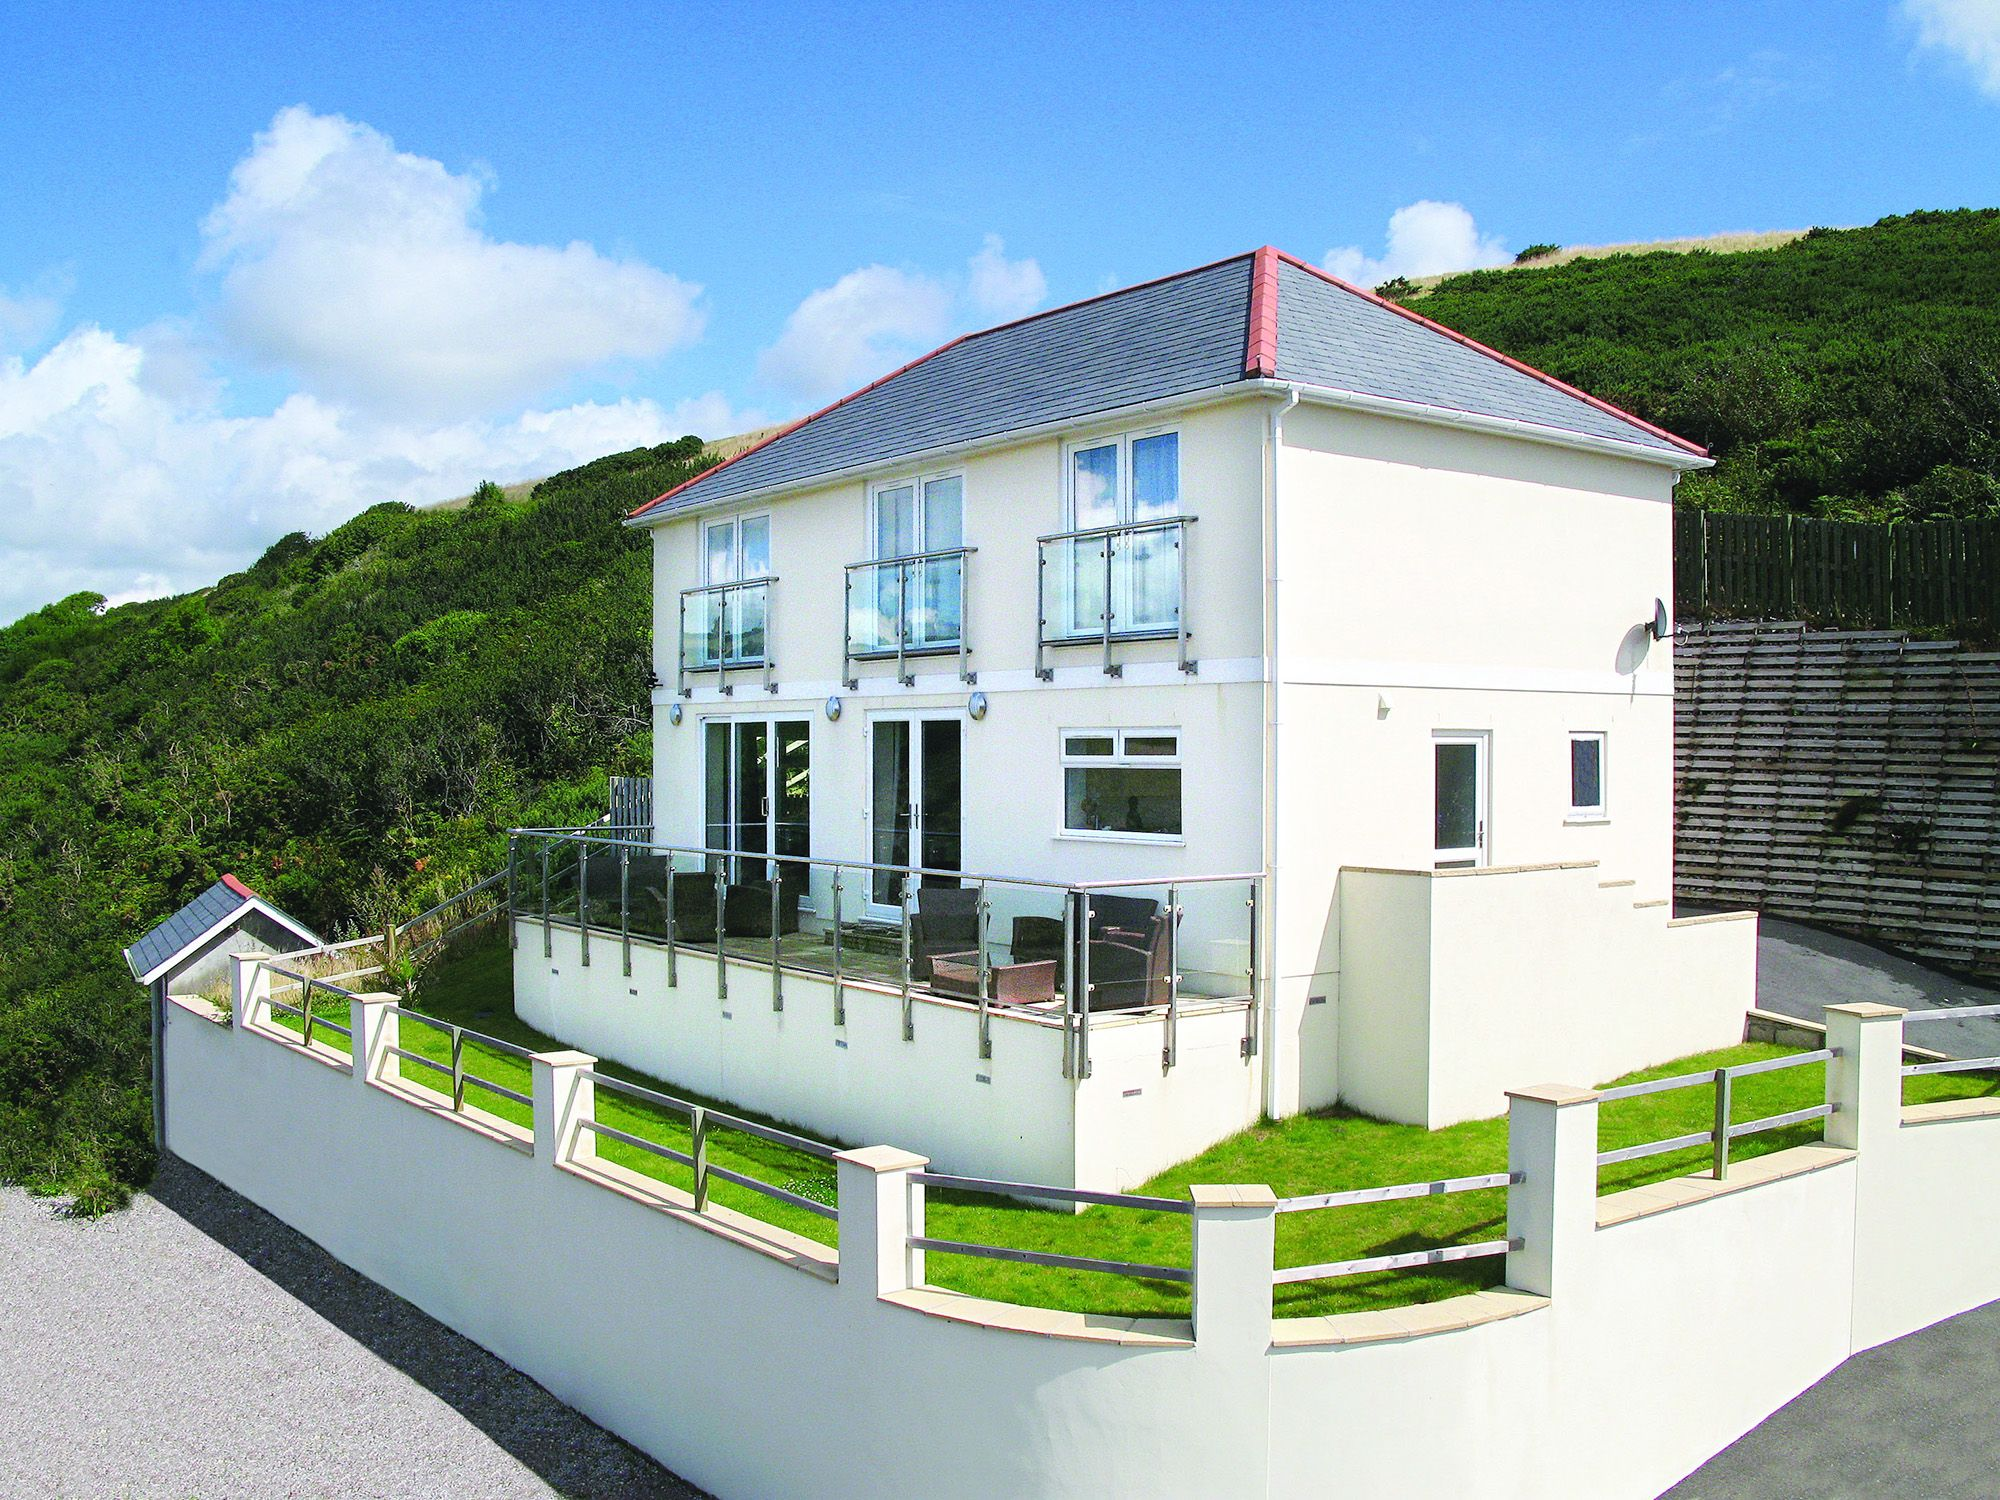 Looe Island View is a 5 star holiday home sleeping 10 in a hillside location